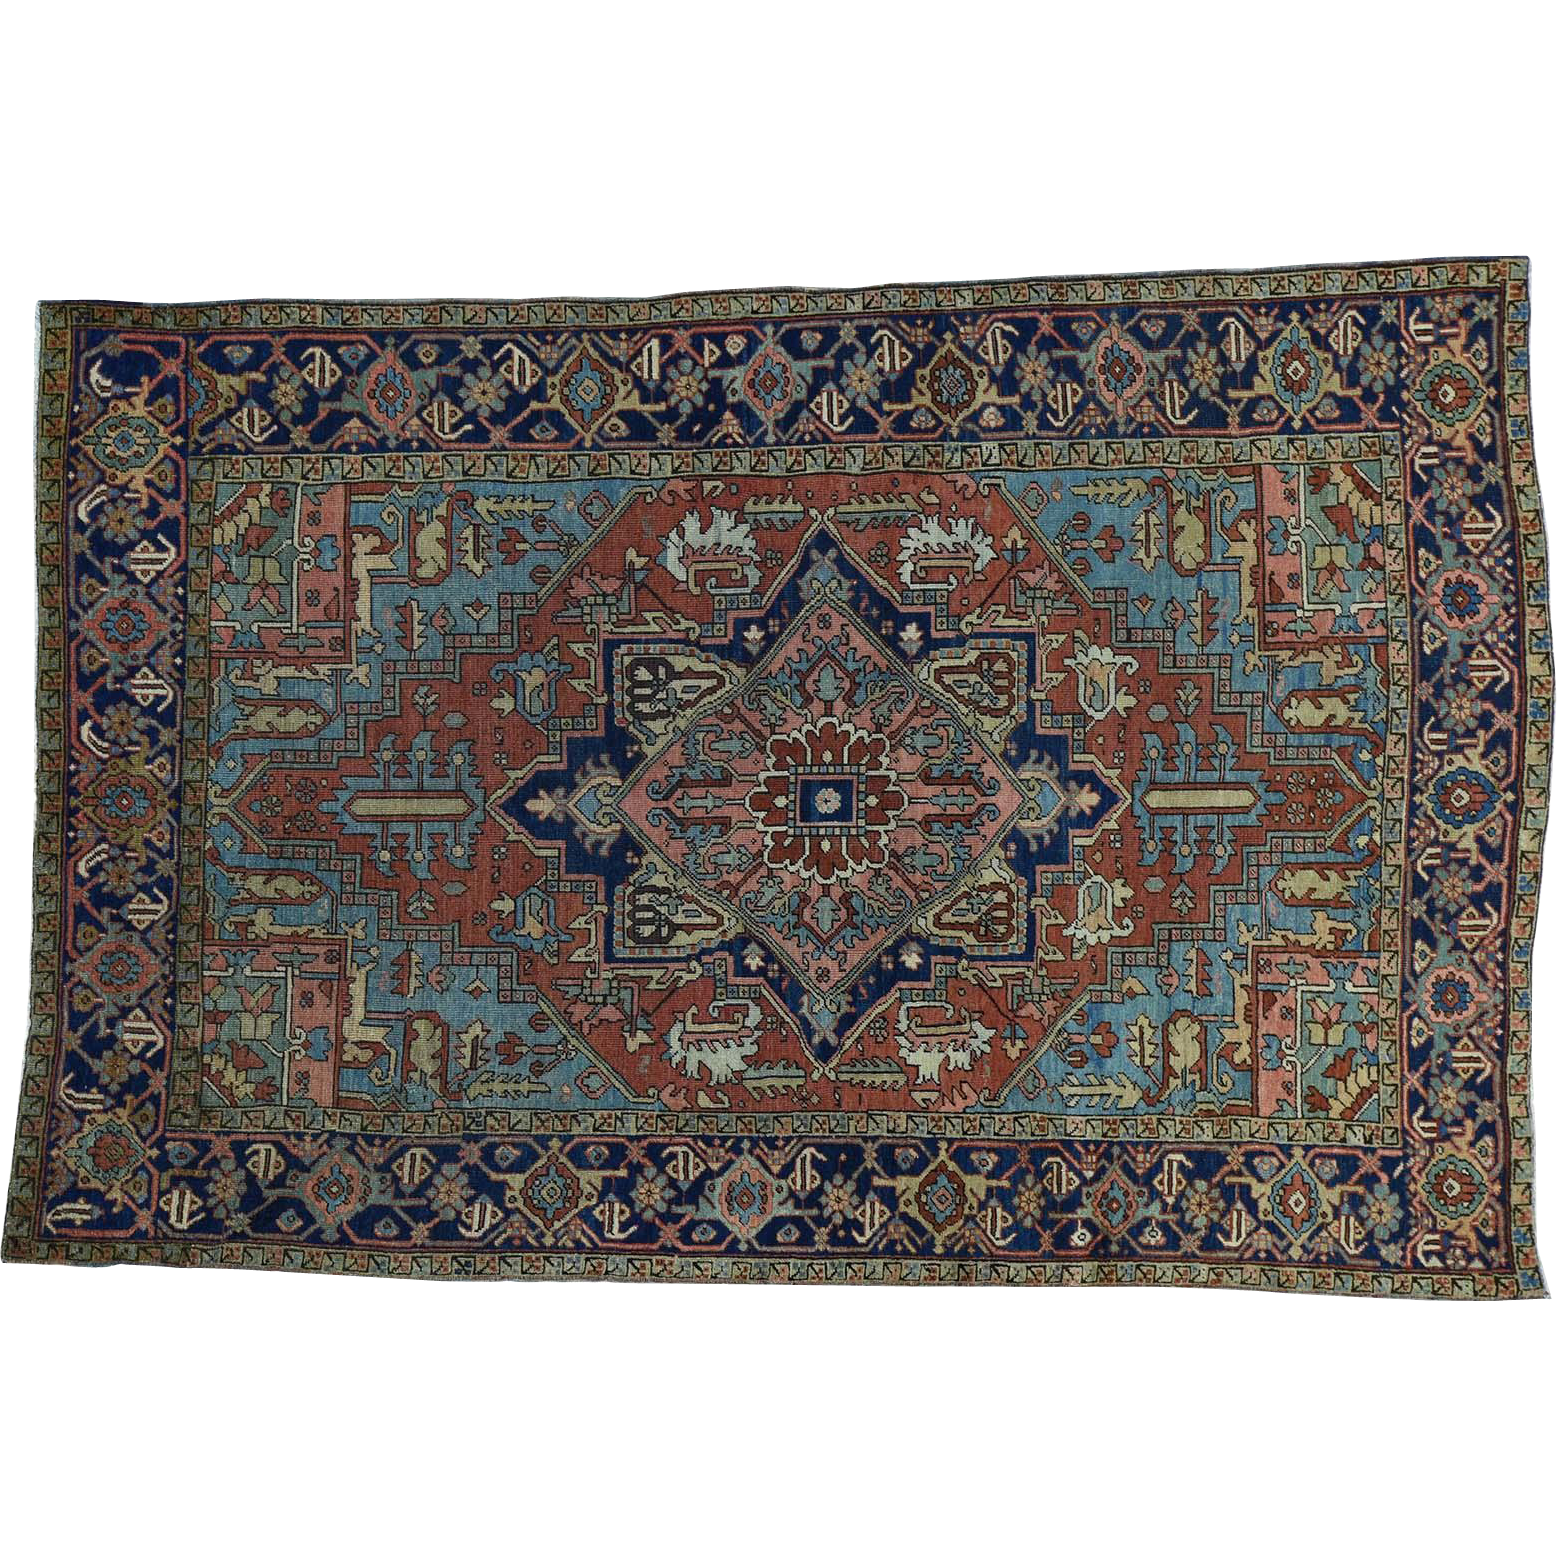 Oriental Rugs Red Bank Nj: Hand-Knotted Antique Persian Heriz Good Cond Oriental Rug